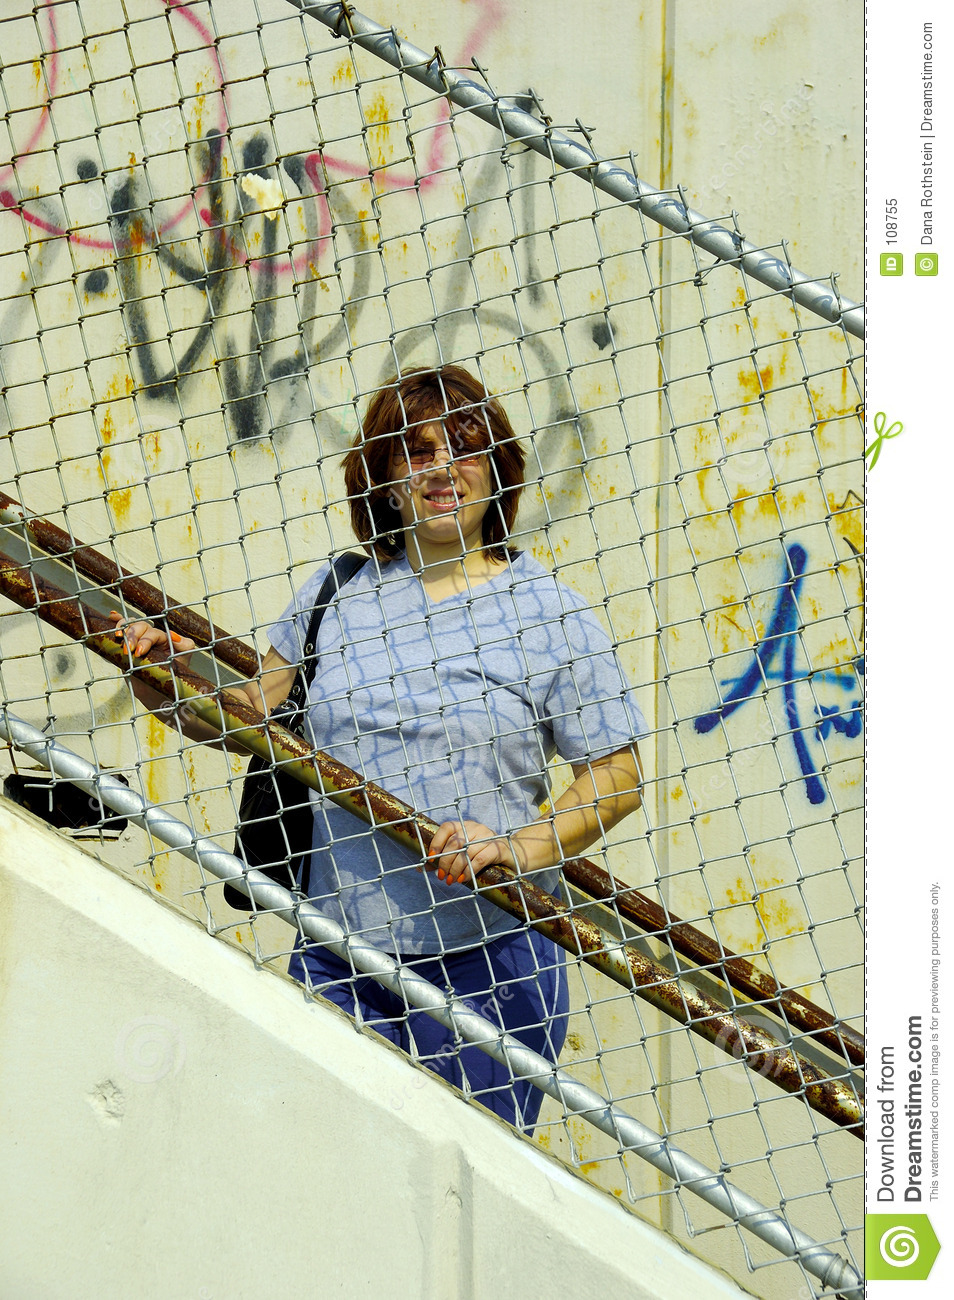 Woman Behind a Fence